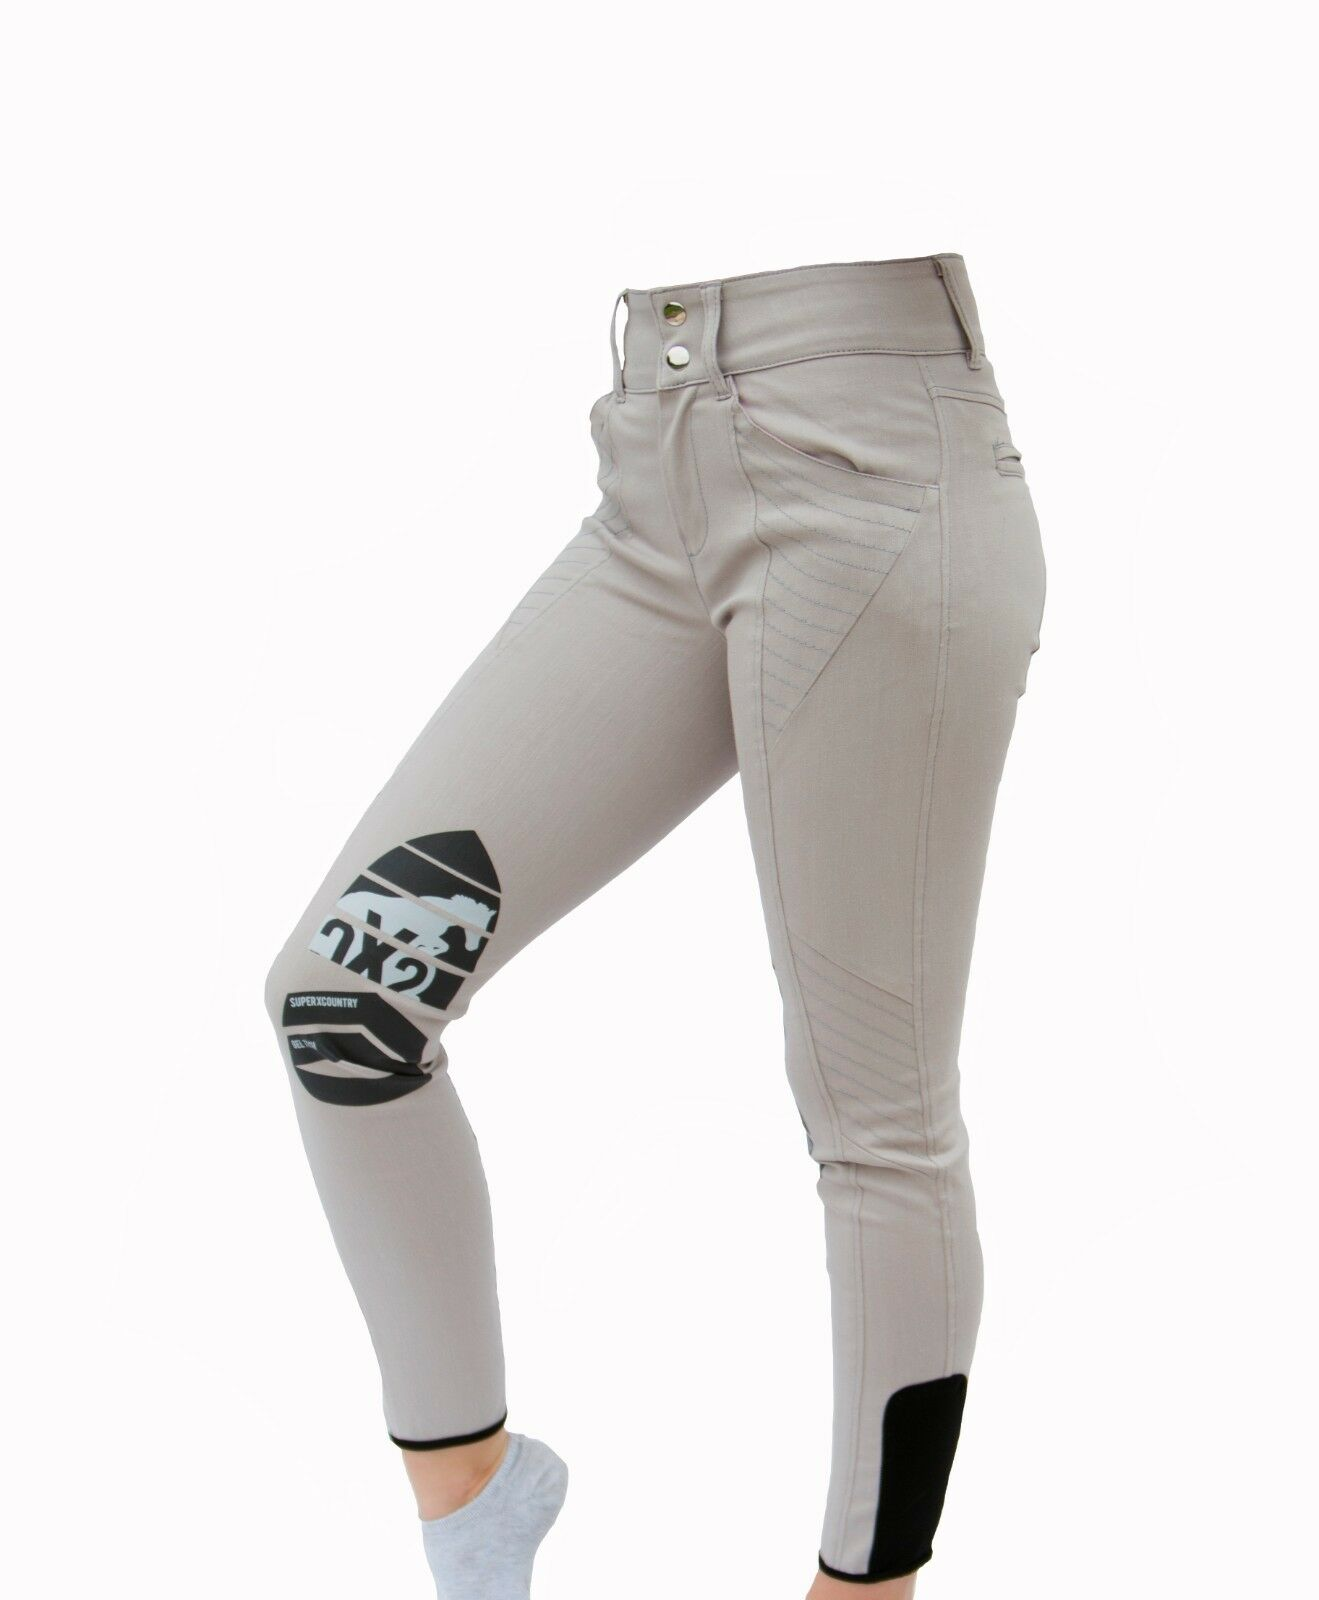 SXC Equestrian Competition Stone Beige Riding Breeches Silicone Gel Knee Grip